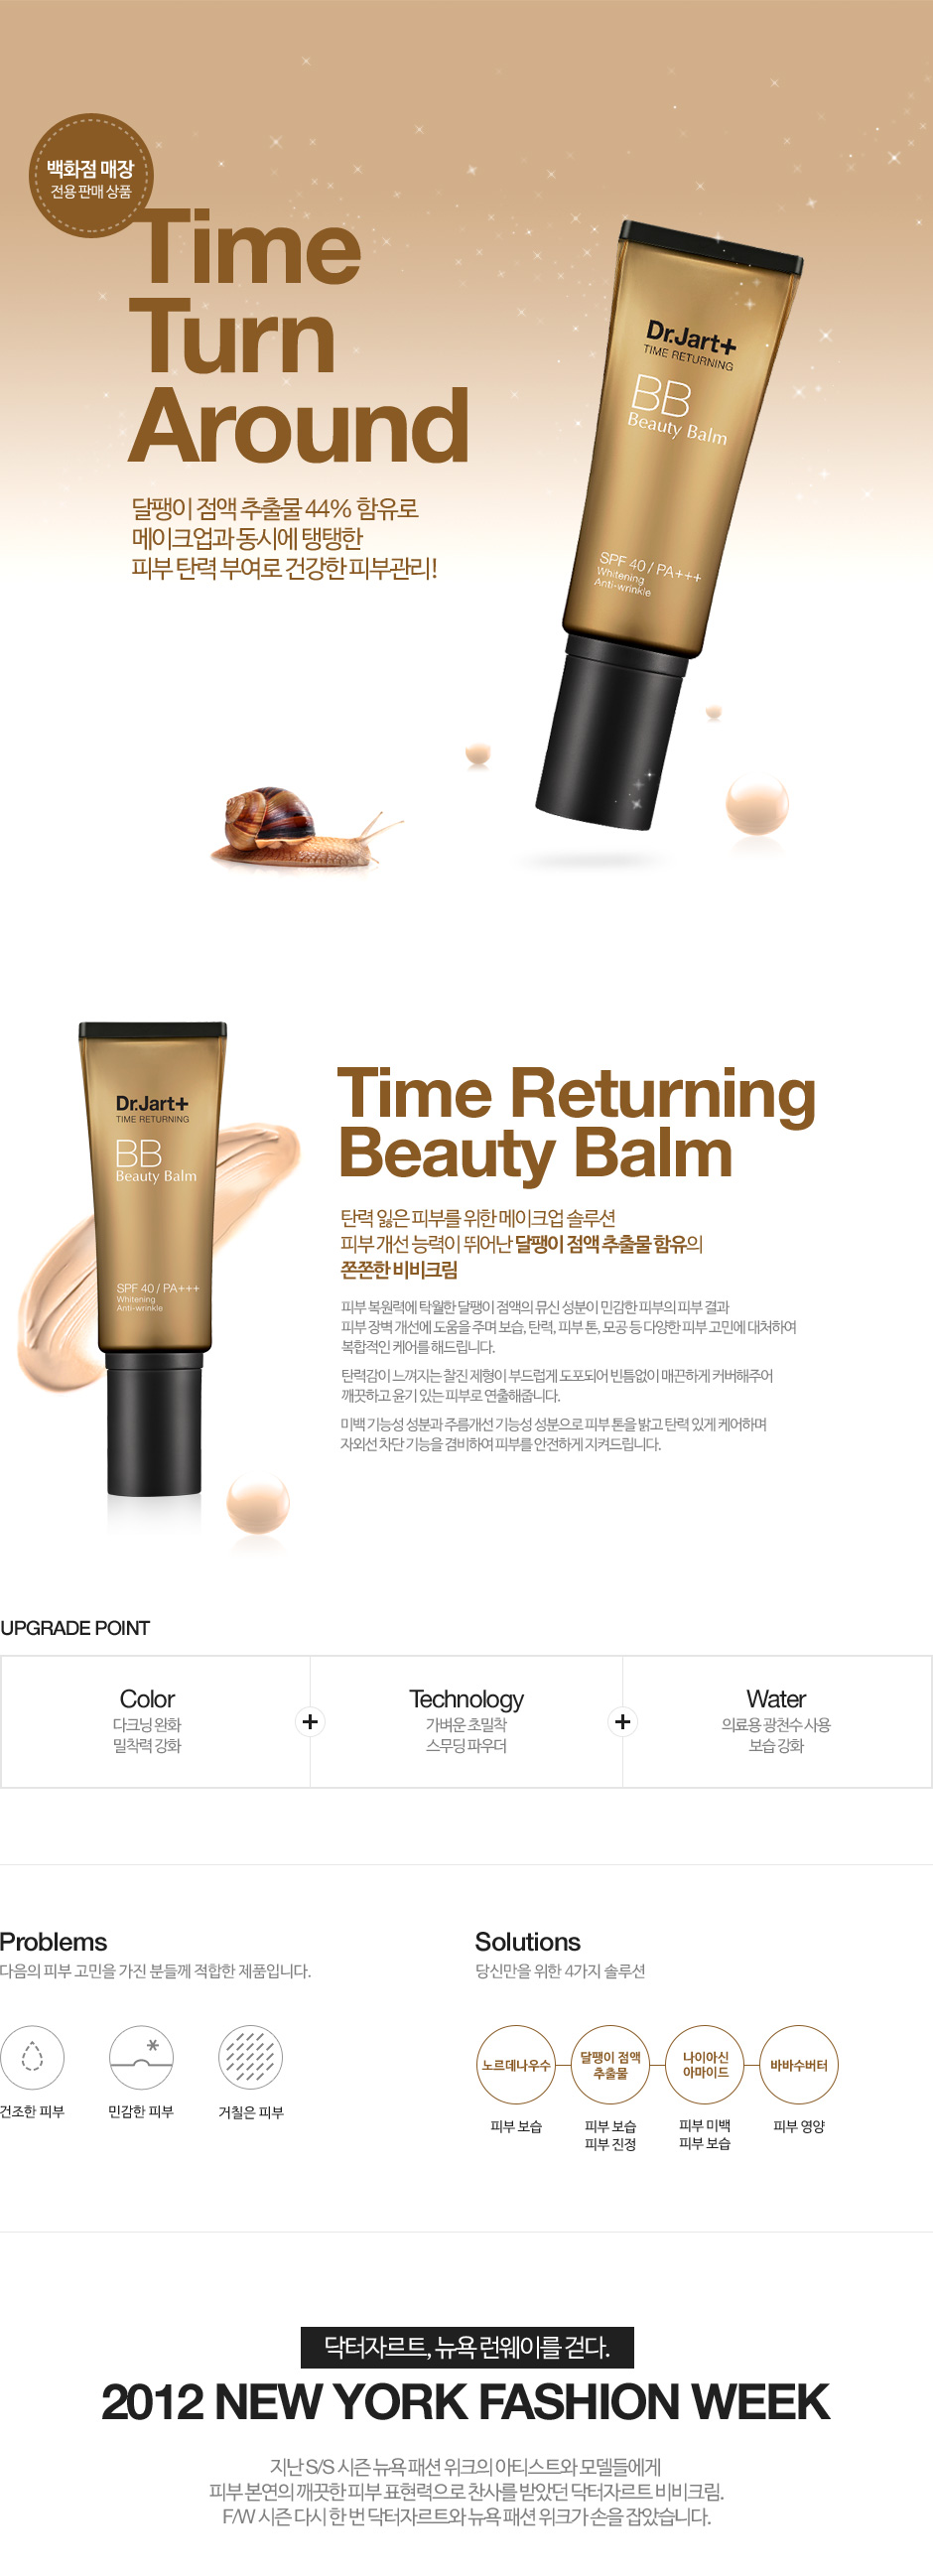 basic_timereturningbeautybalm_940.jpg